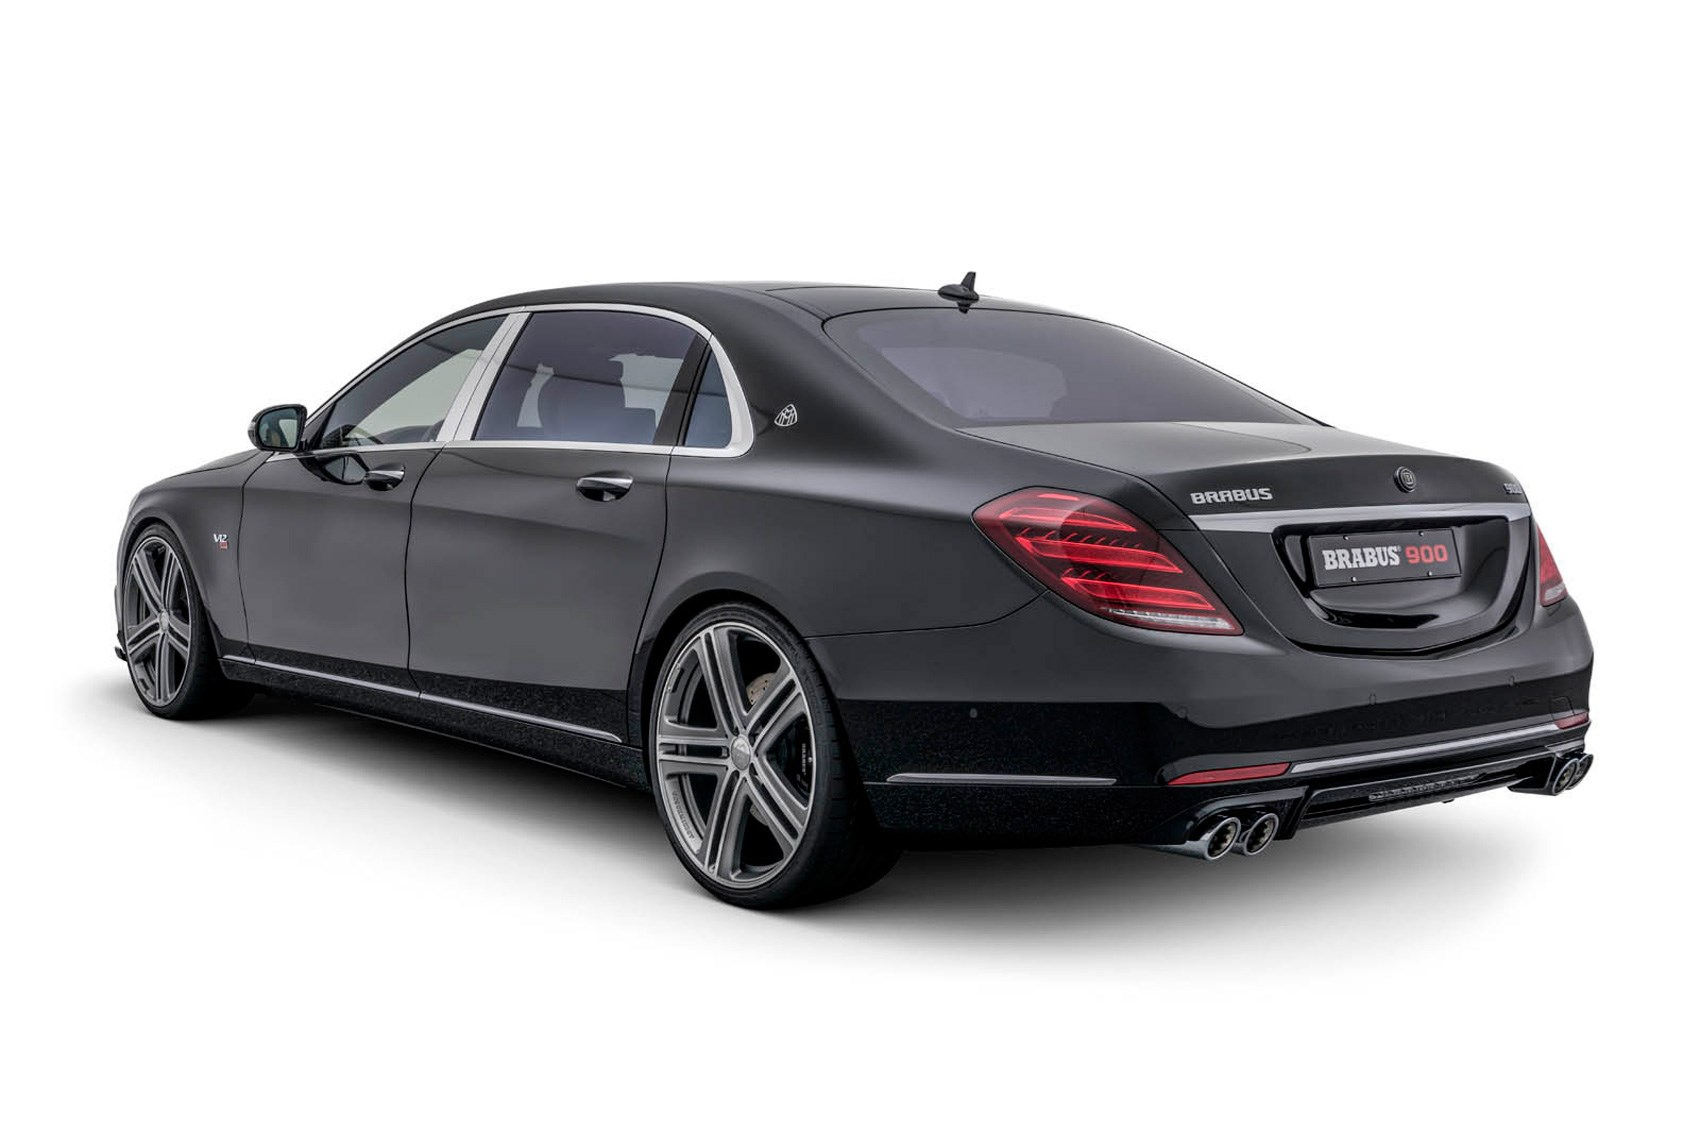 demonic limo mercedes s class facelift gets 888bhp brabus treatment by car magazine. Black Bedroom Furniture Sets. Home Design Ideas